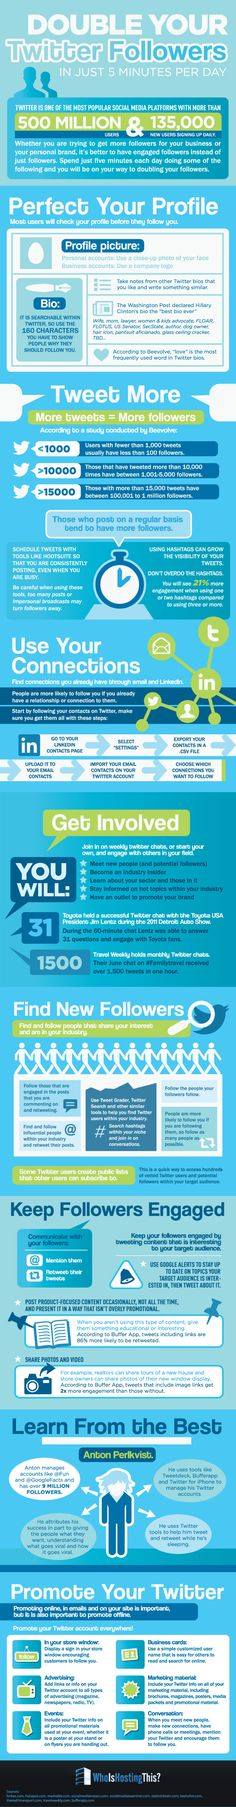 Infographic: Double Your Twitter Followers in Just Five Minutes a Day